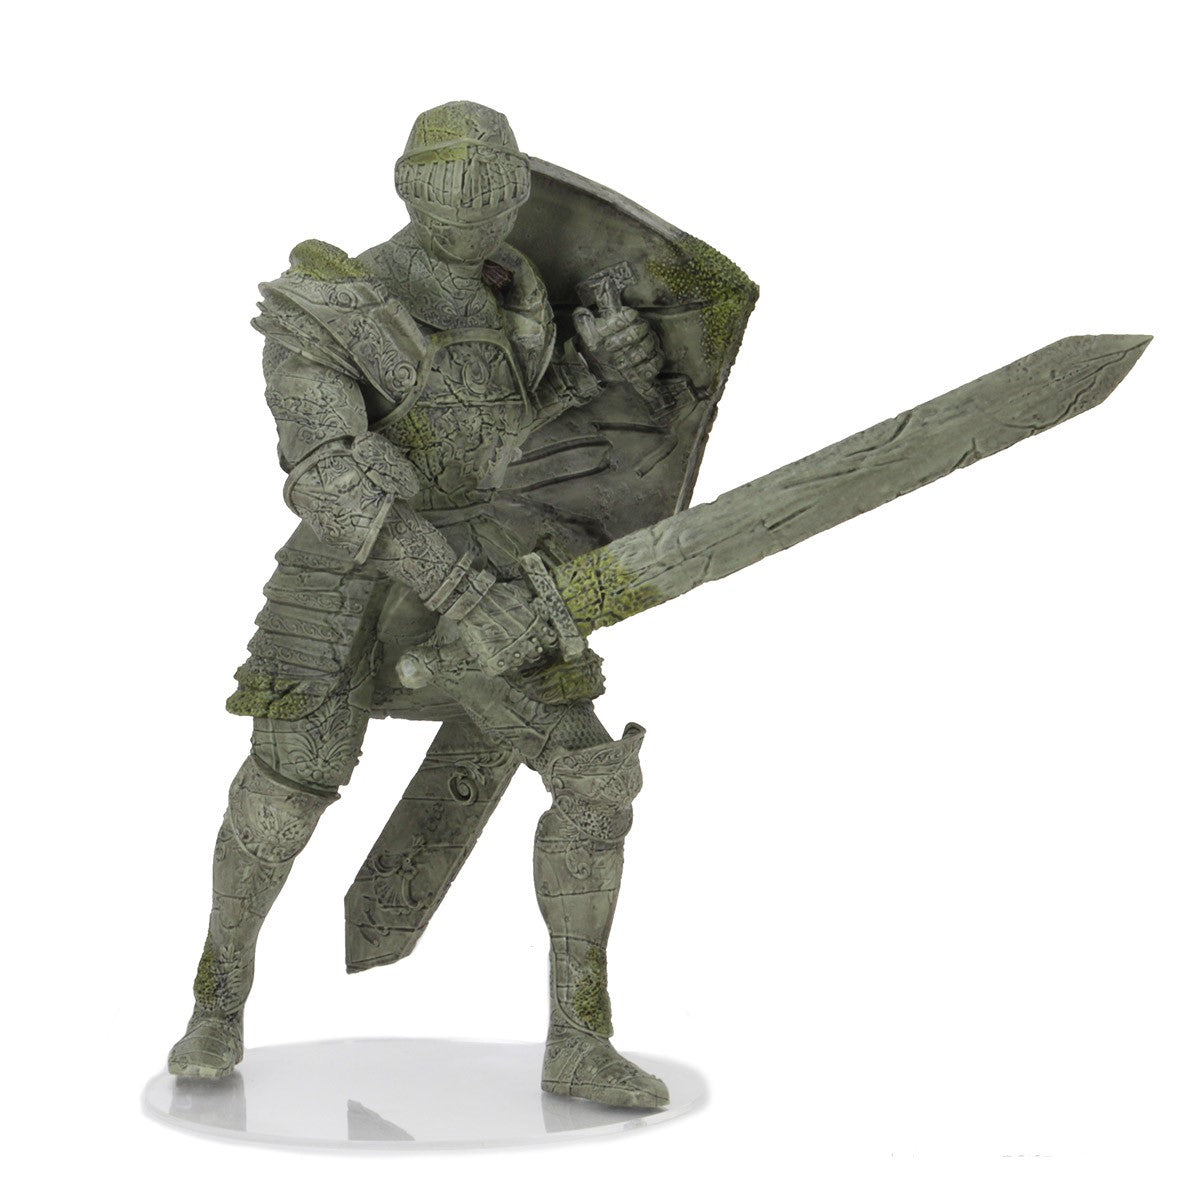 D&D Icons of the Realms: Walking Statue of Waterdeep, The Honourable Knight